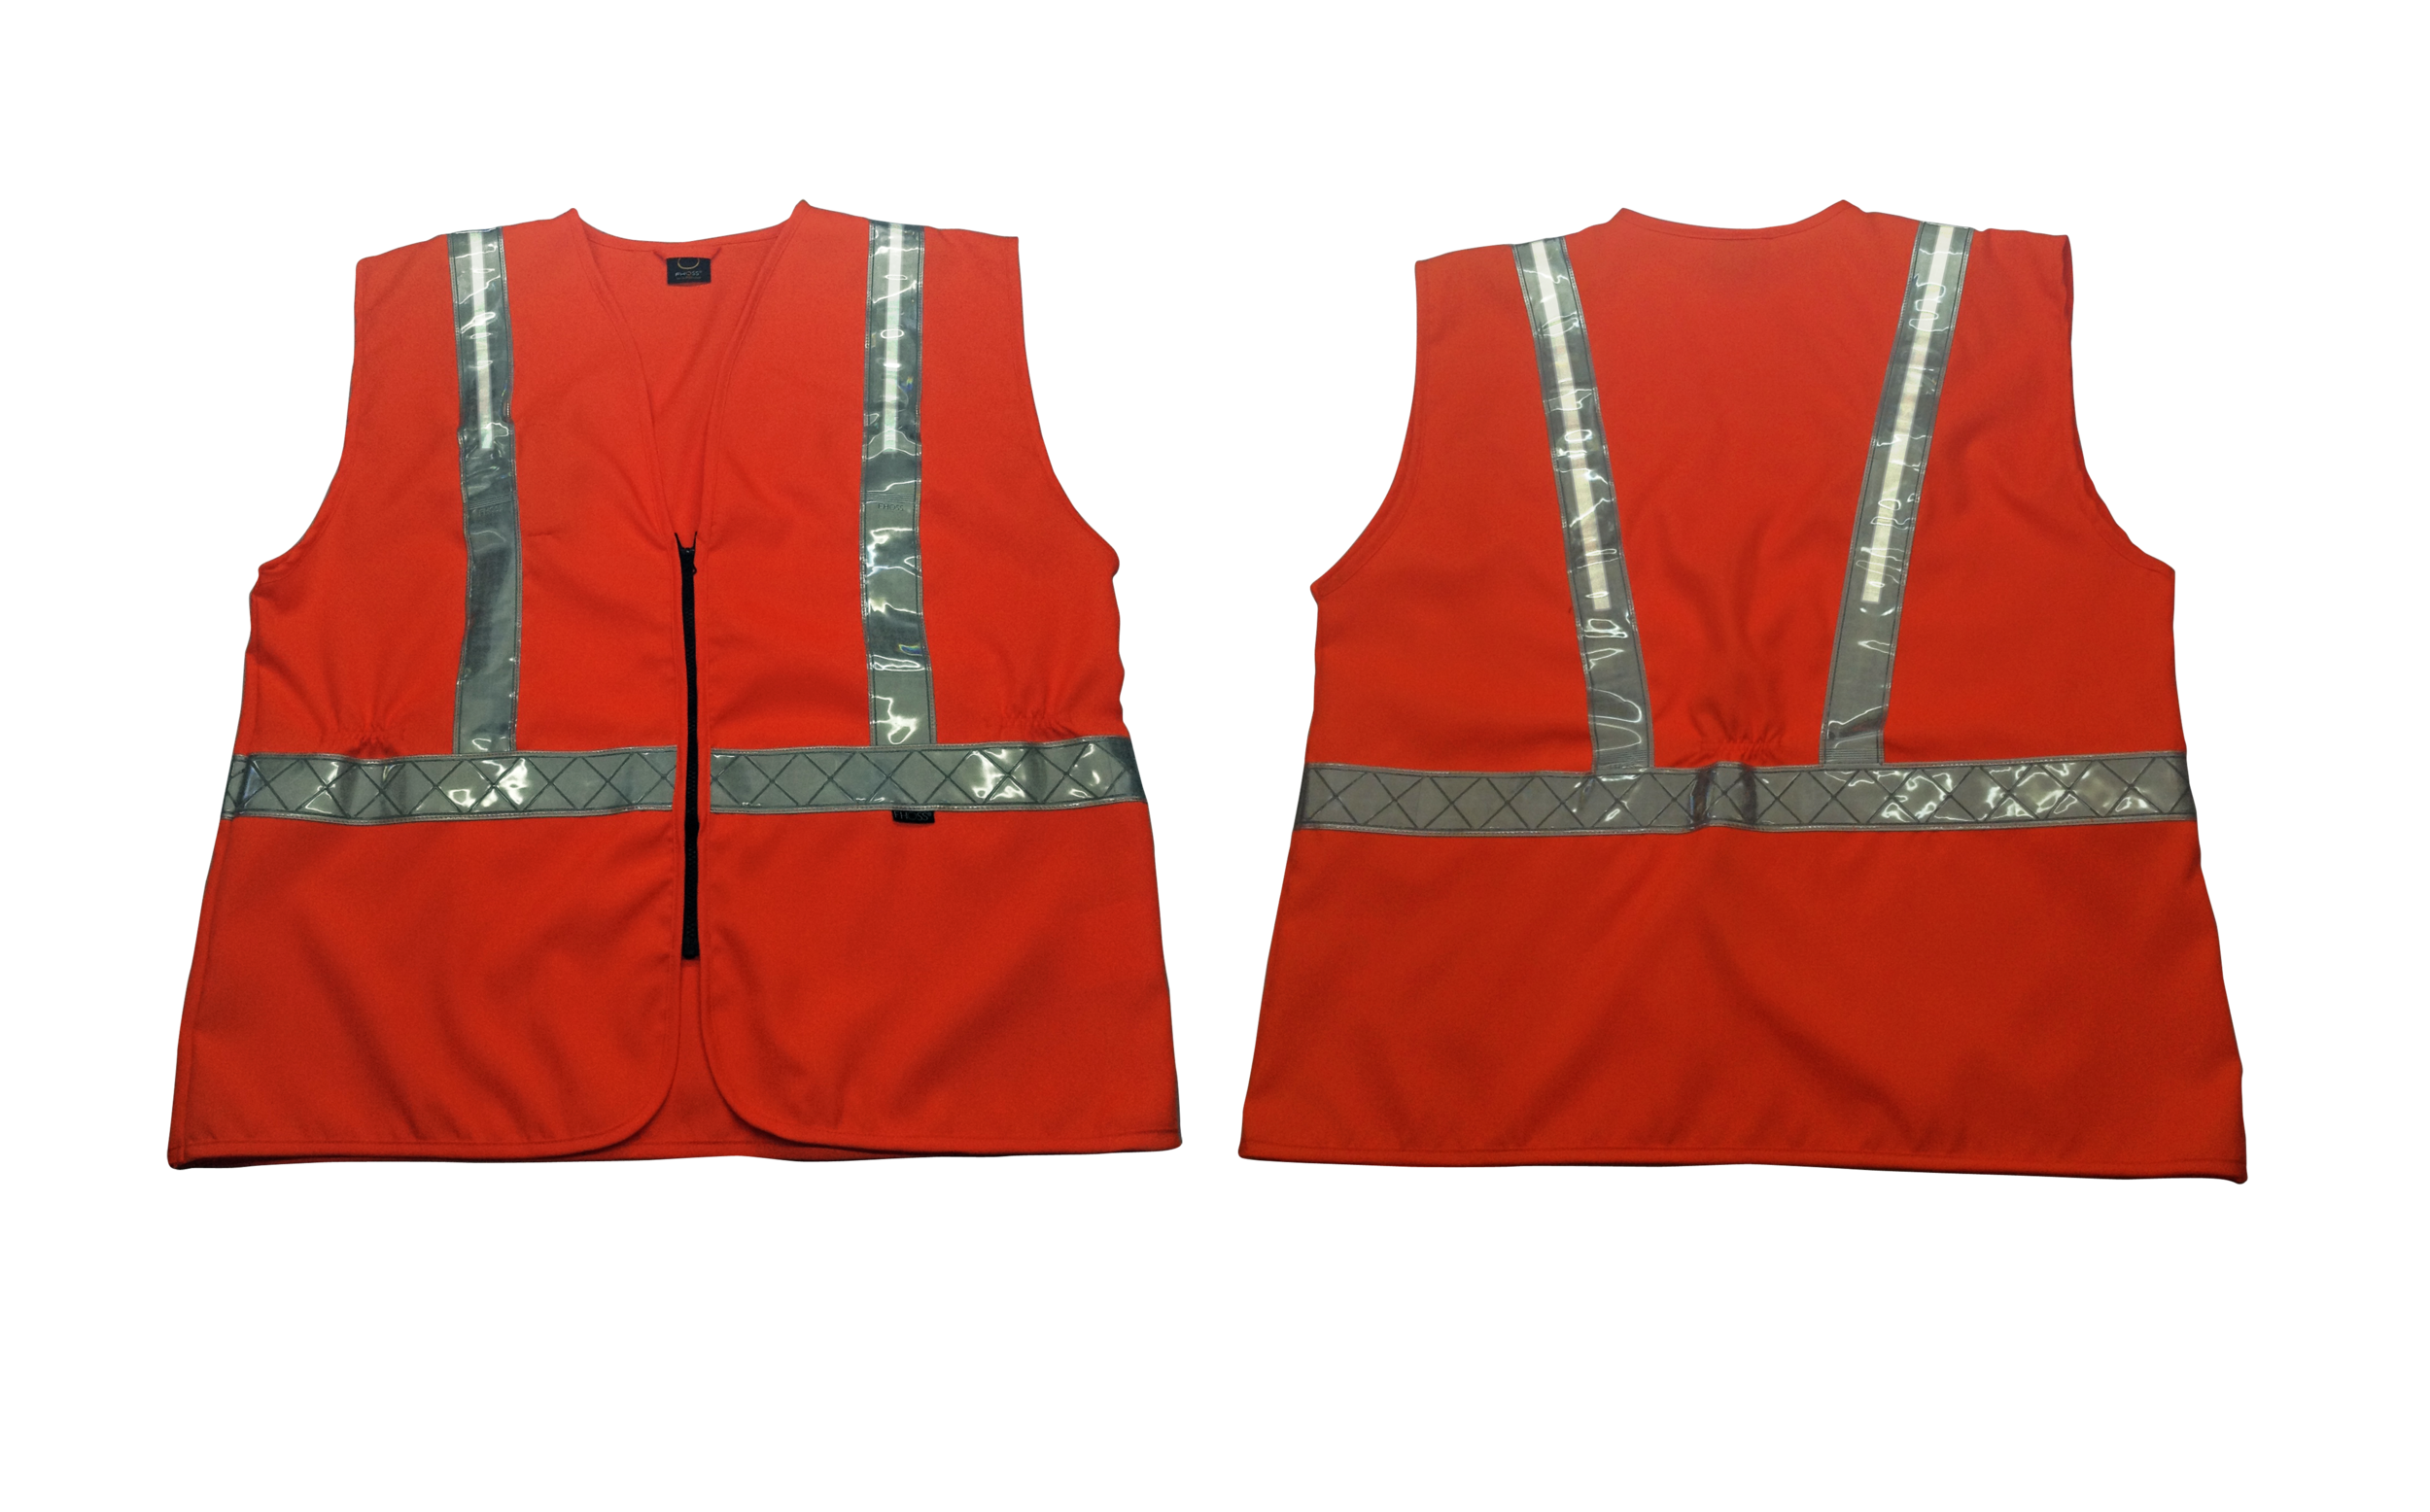 FiVita Safety Vest   100% Polyester • Sealed Fhoss illuminated strip • Solid & durable • Water resistant • Colour options: Yellow & Orange   Test Criteria /  EN ISO 20471:2013 • ANSI / ISEA 107 • CSA Z96:02/09 • GO/RT3279 • IP 67 Connector